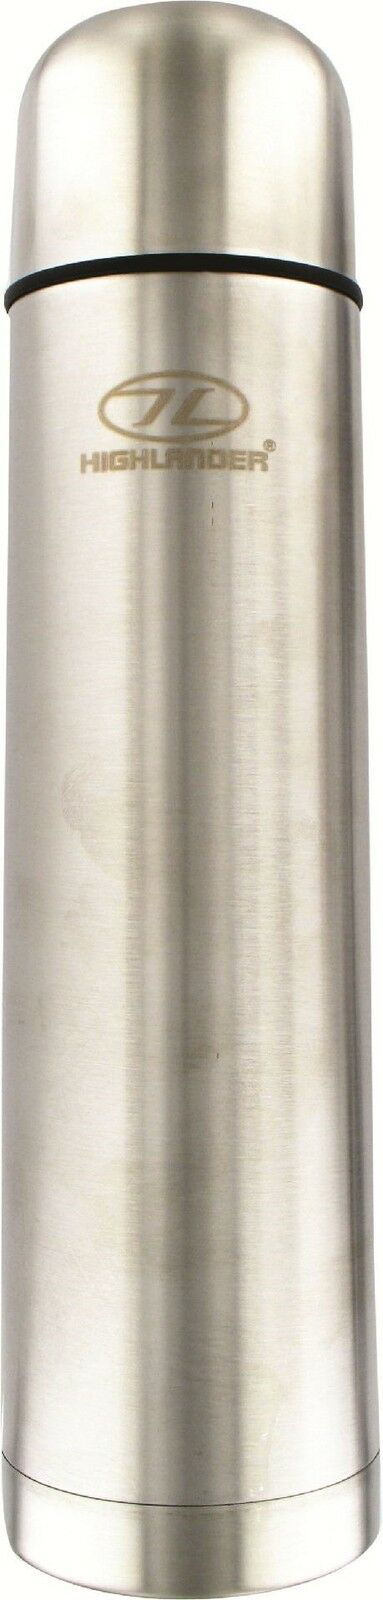 Stainaleess Steel Thermal Bushcraft Camping Travel Flask Tufflask 1 Litre